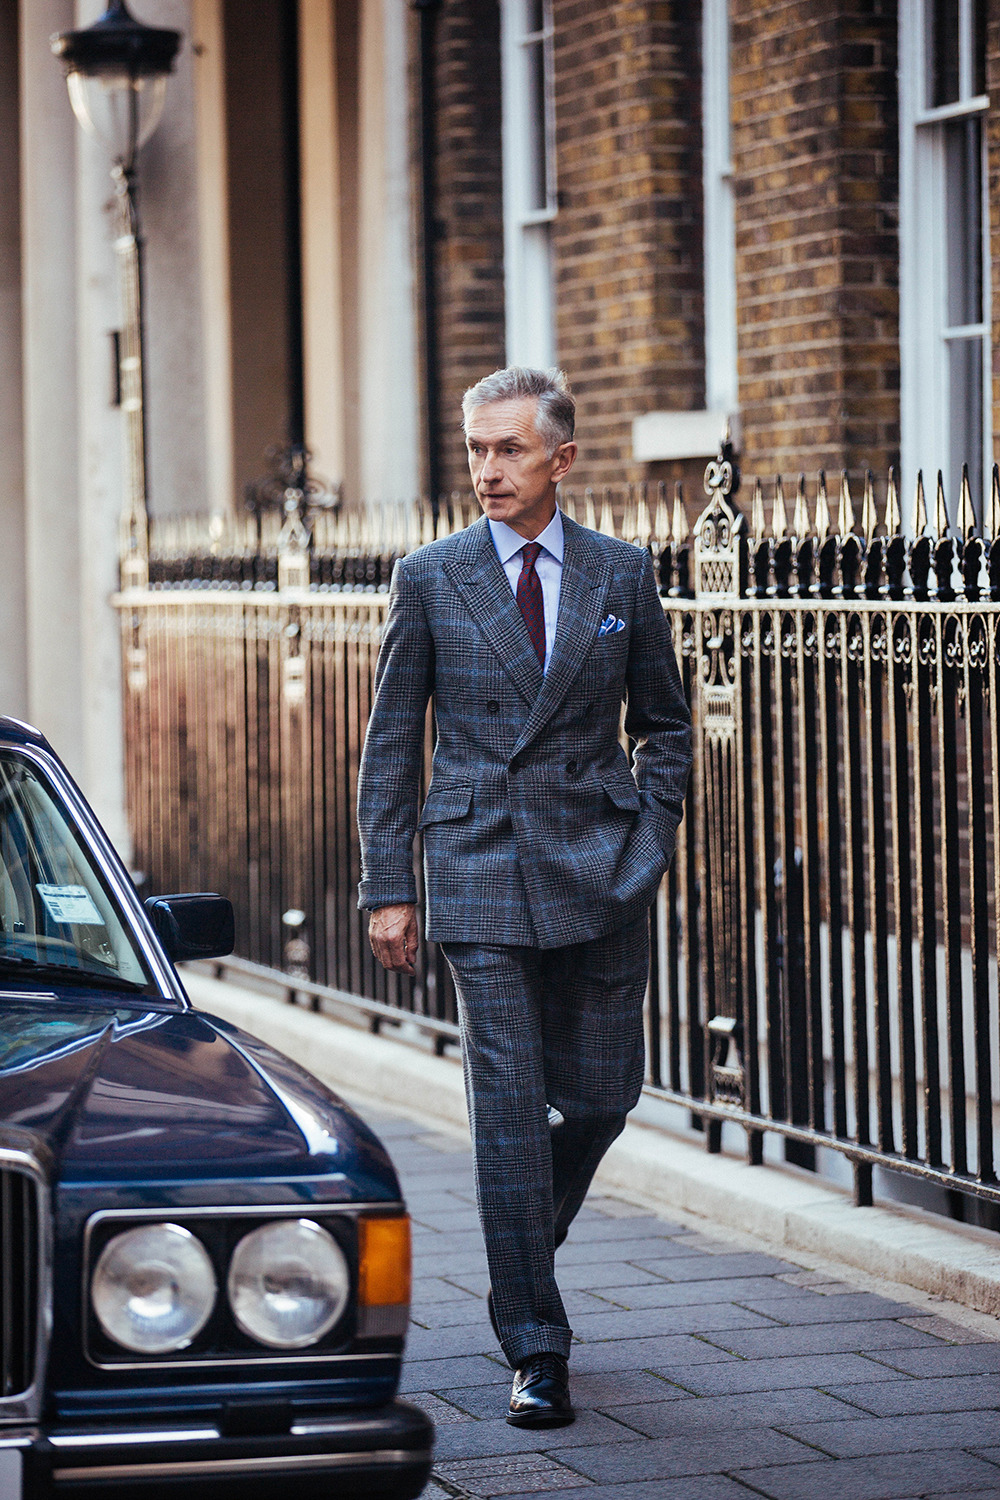 Real People: Style for Older Men